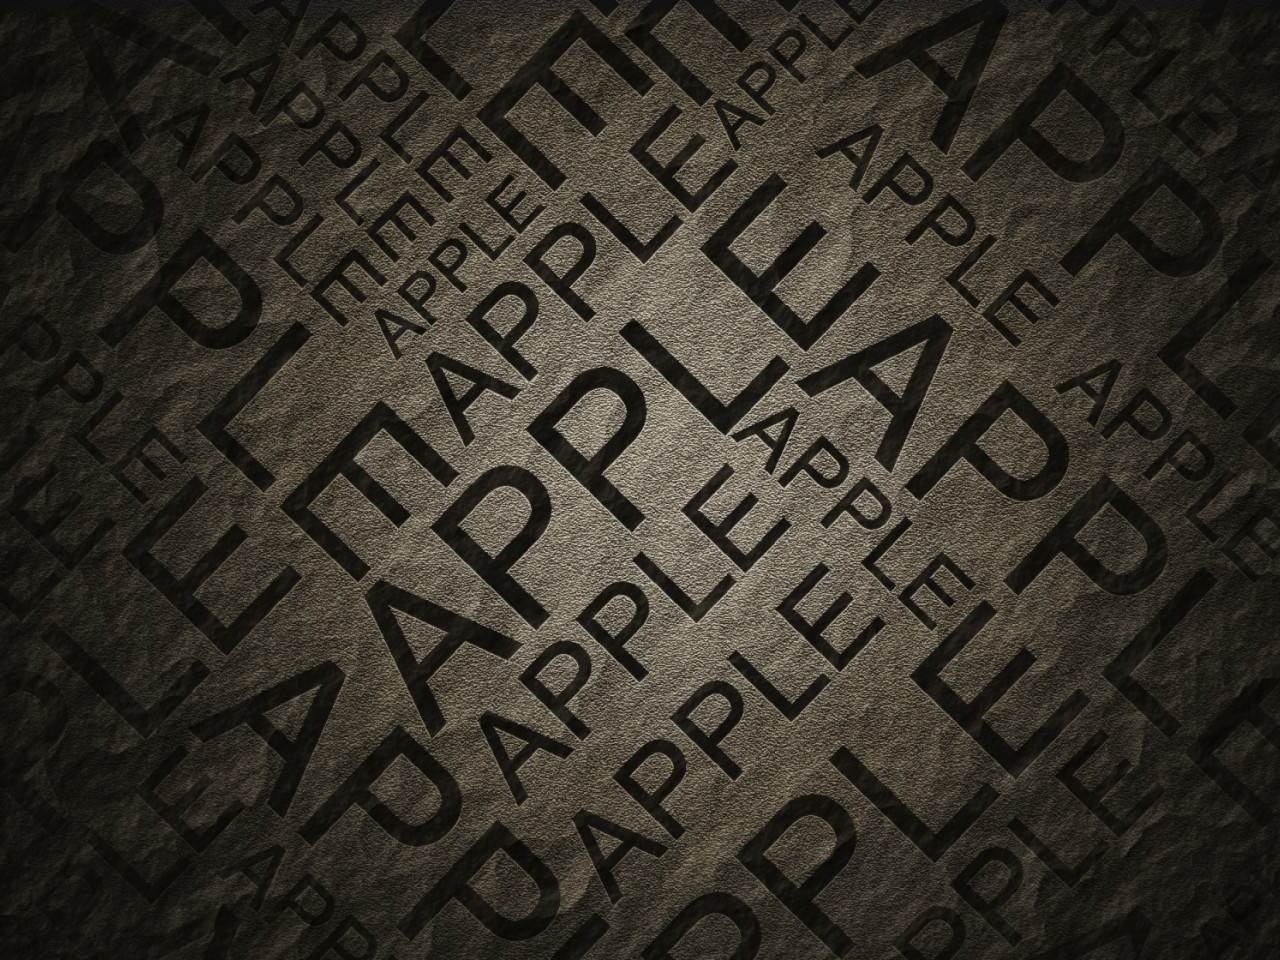 Creative Font Typhography Amazon Walls HD Wallpapers Background 1280x960